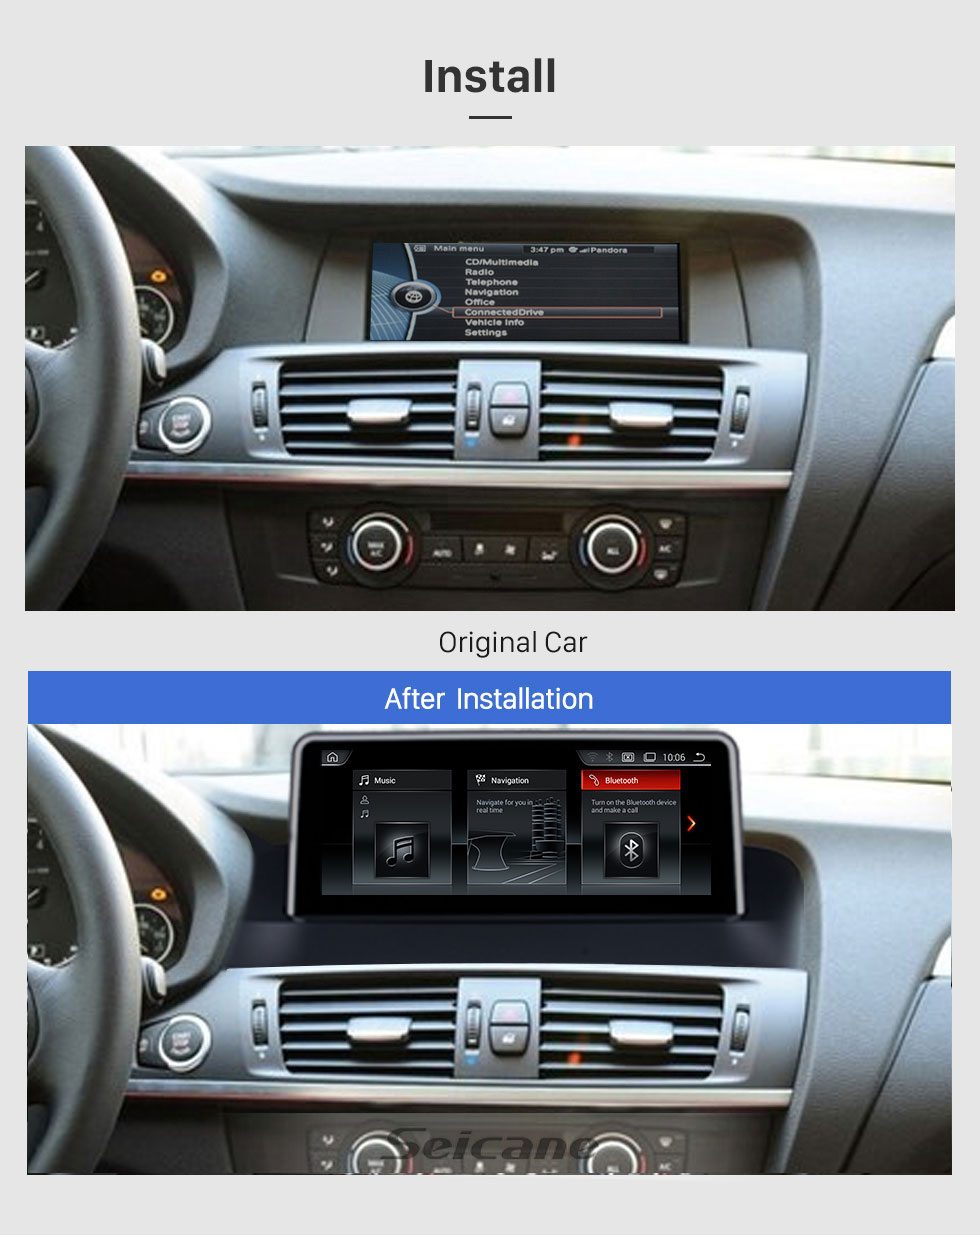 Seicane HD Touchscreen 8.8 inch for BMW X3 F25/X4(2010-2013) CIC Radio Android 10.0 GPS Navigation System with Bluetooth support Carplay TPMS